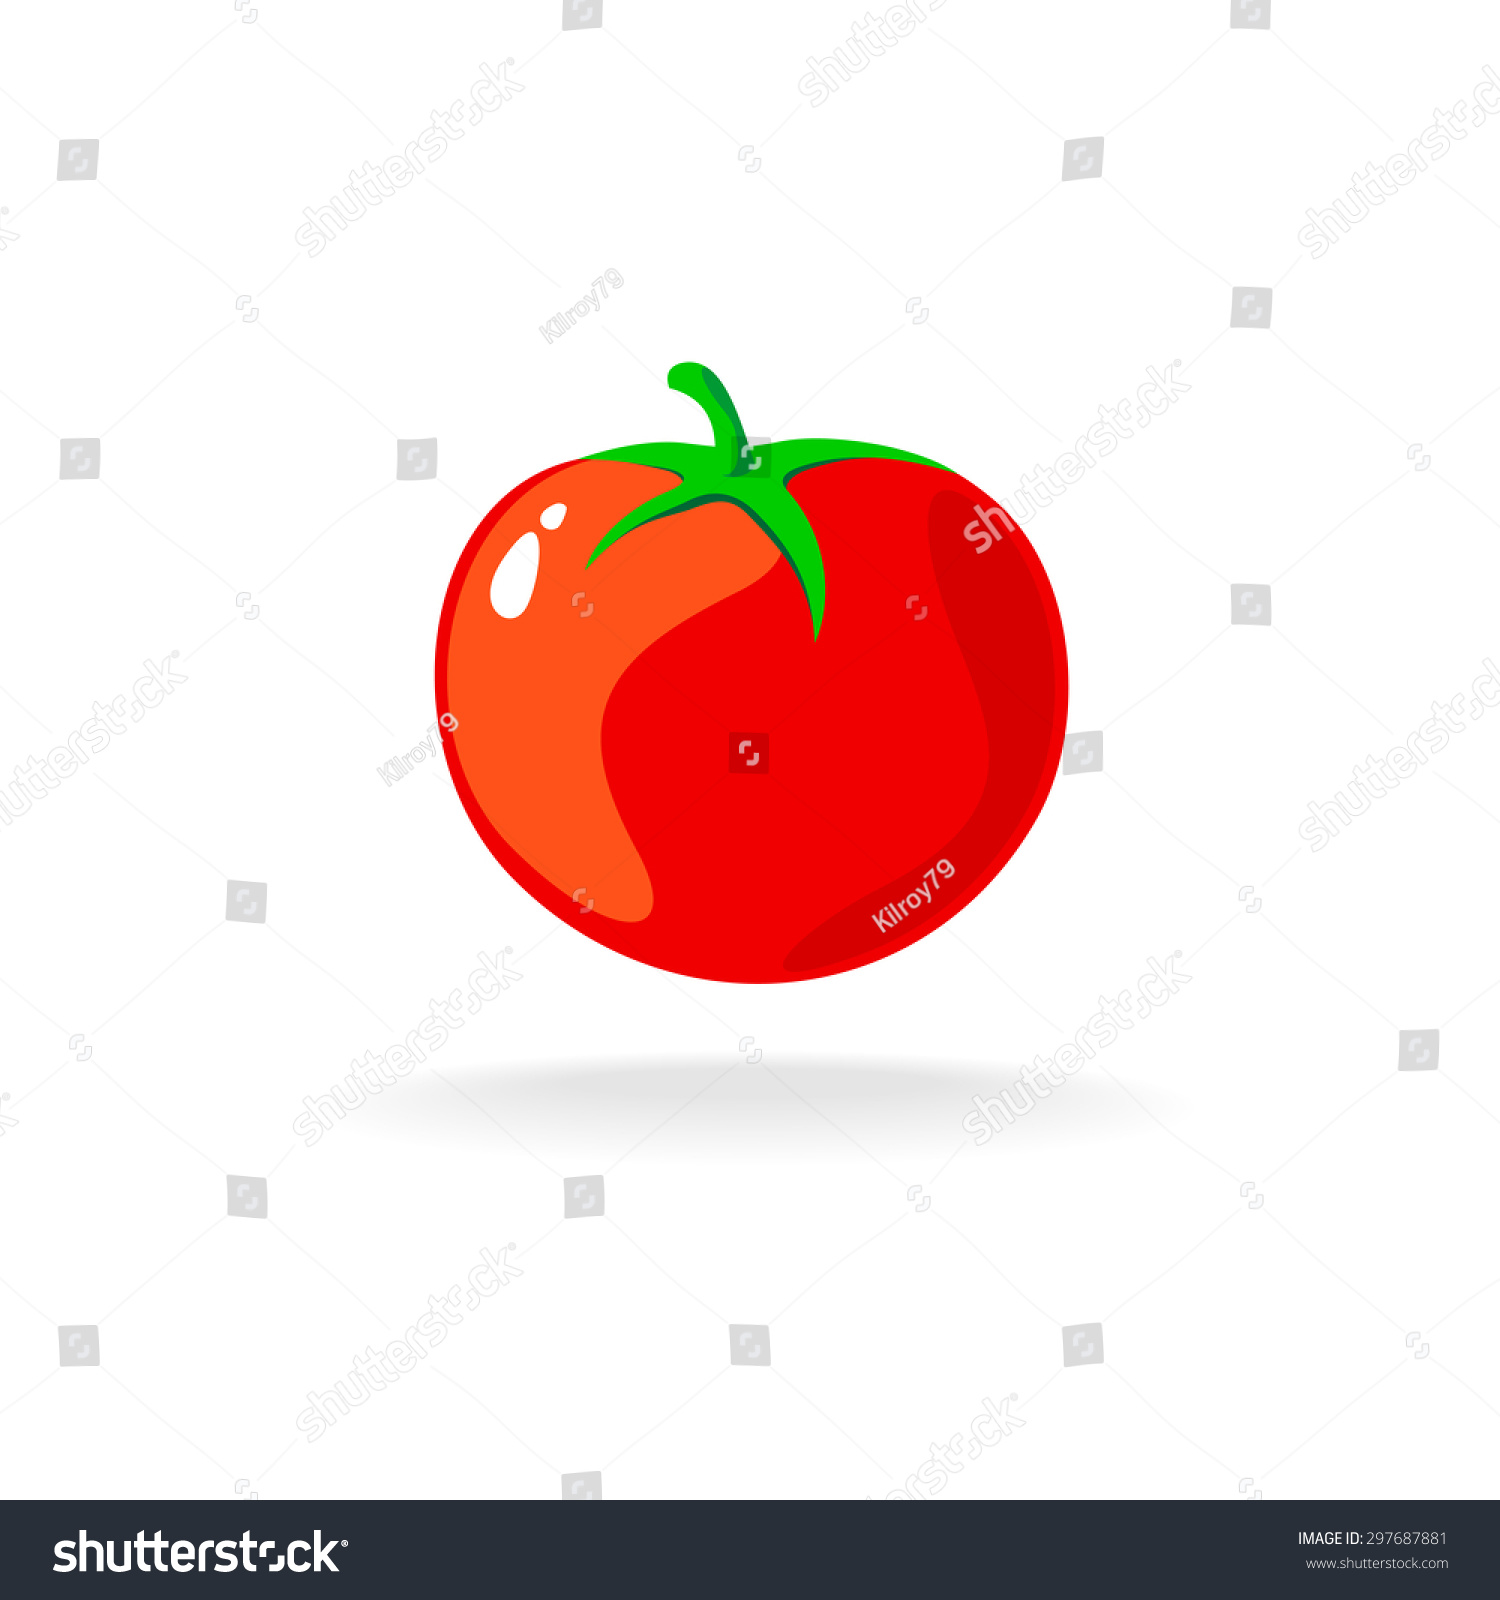 Tomato isolated single simple cartoon illustration stock for Simple single